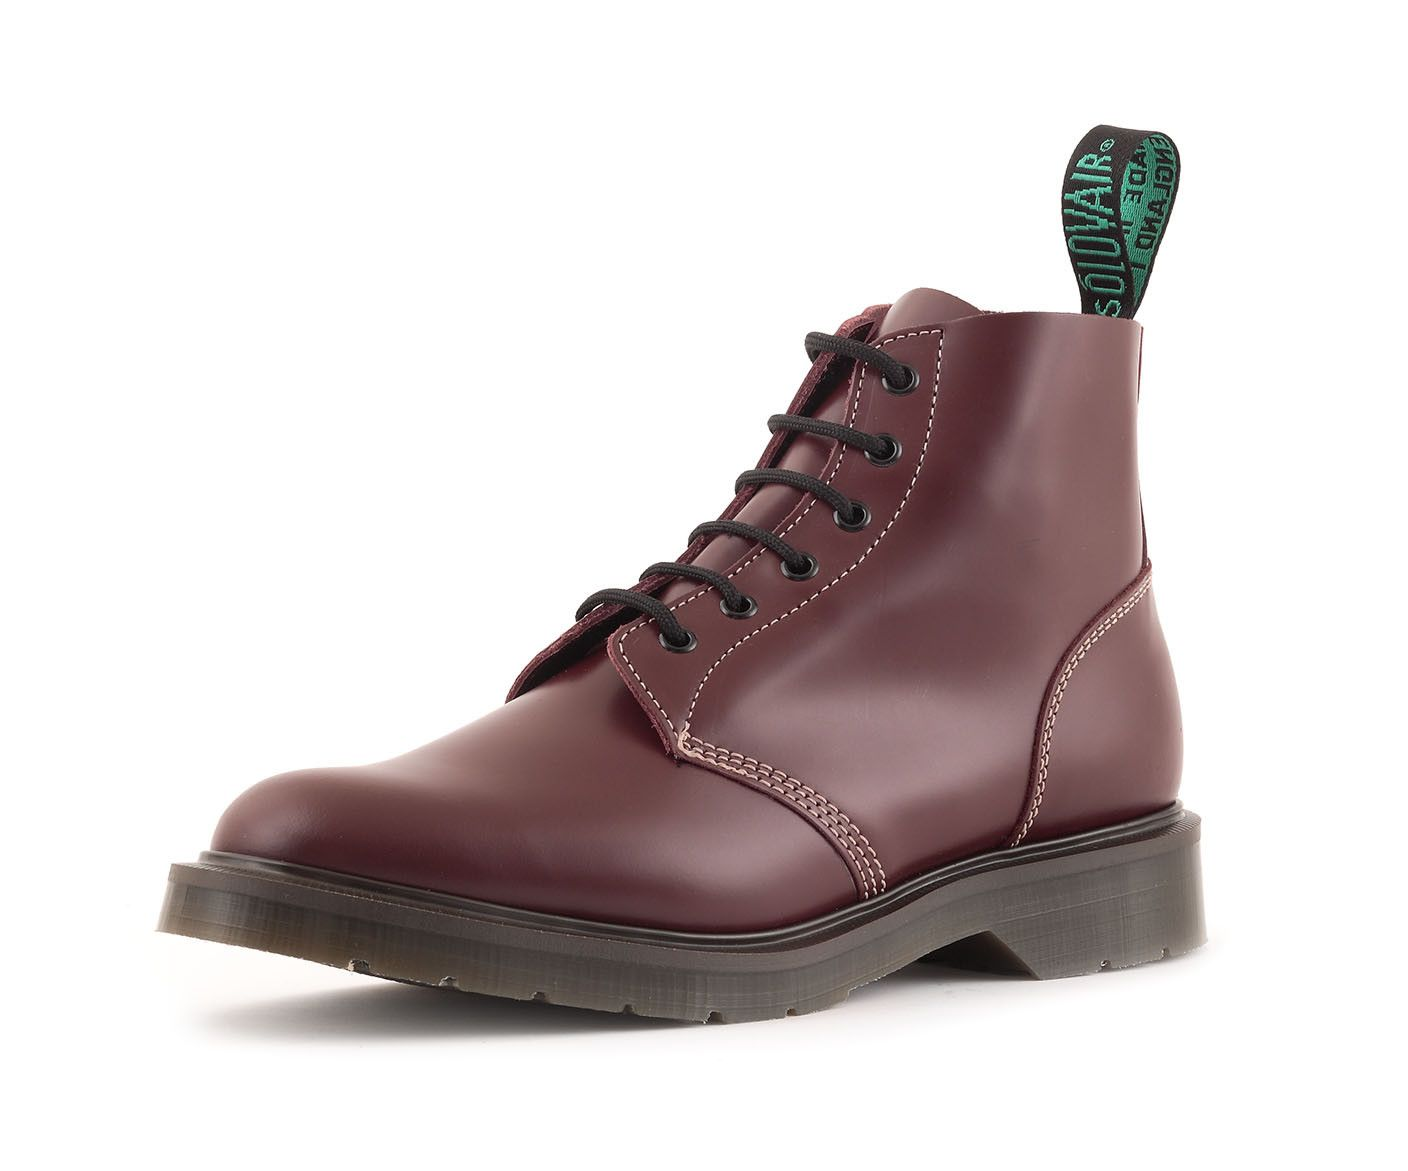 Classic 6 Eye Derby Boot In Oxblood Shoes Boots Oxblood Shoes